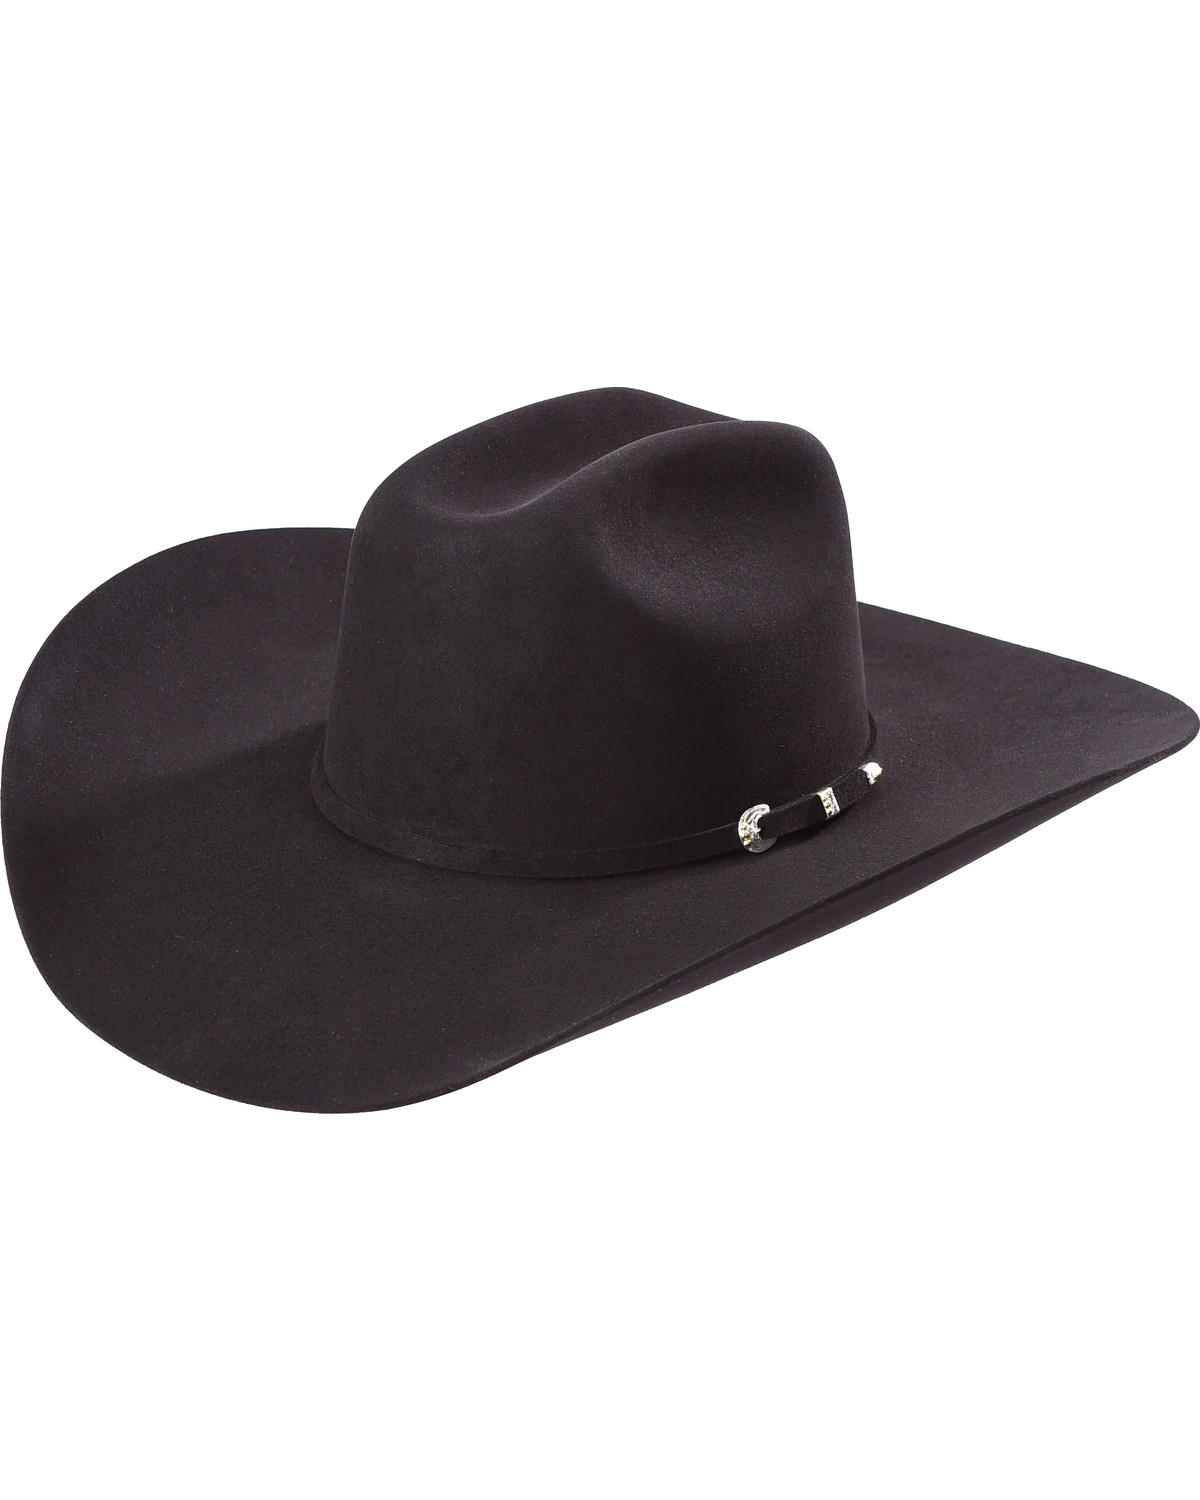 a9bcd077291 Serratelli Men s 6X Beaver Canyon Felt Cowboy Hat